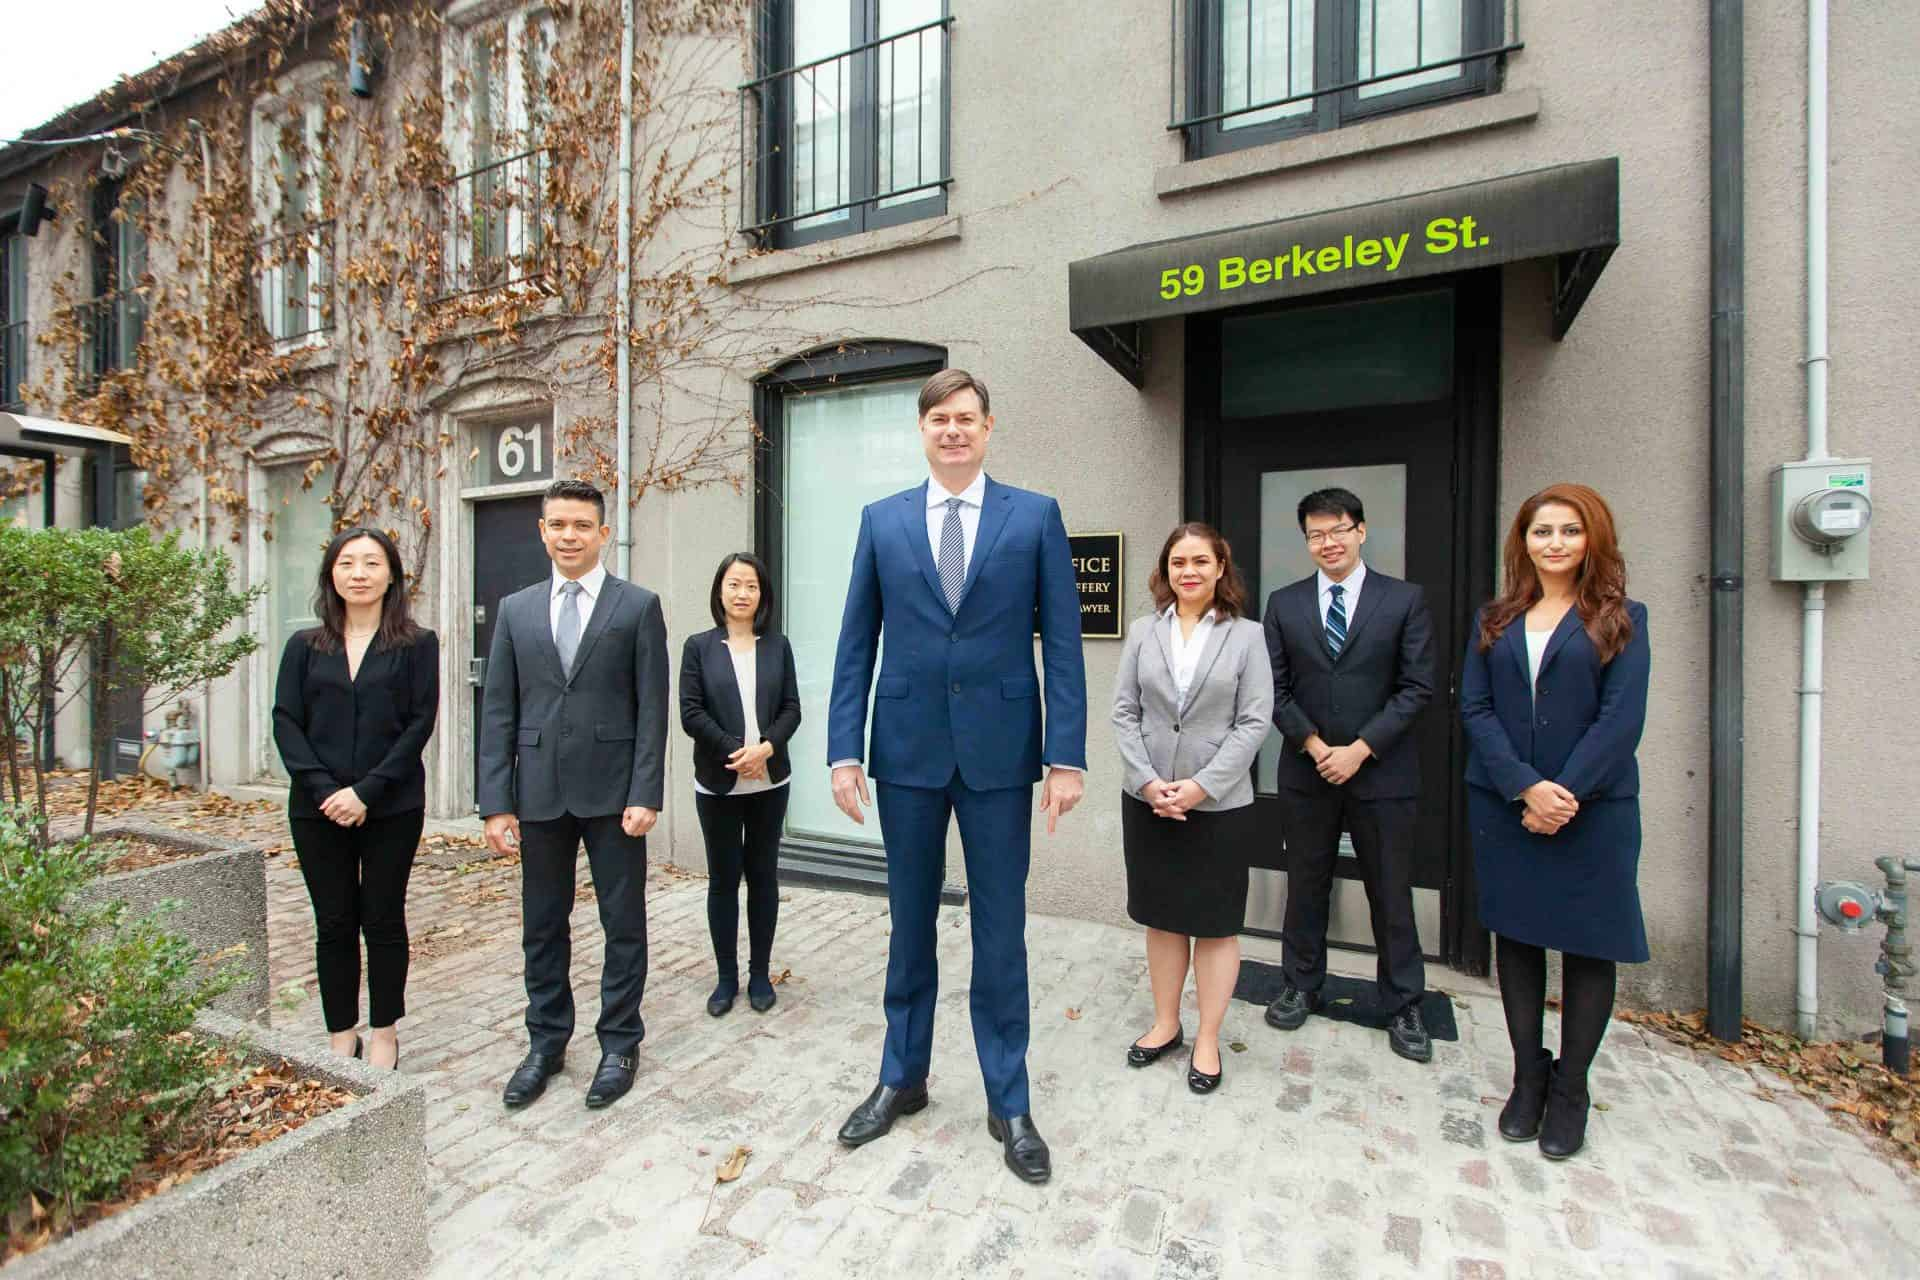 lawyer-office-richteamedia360